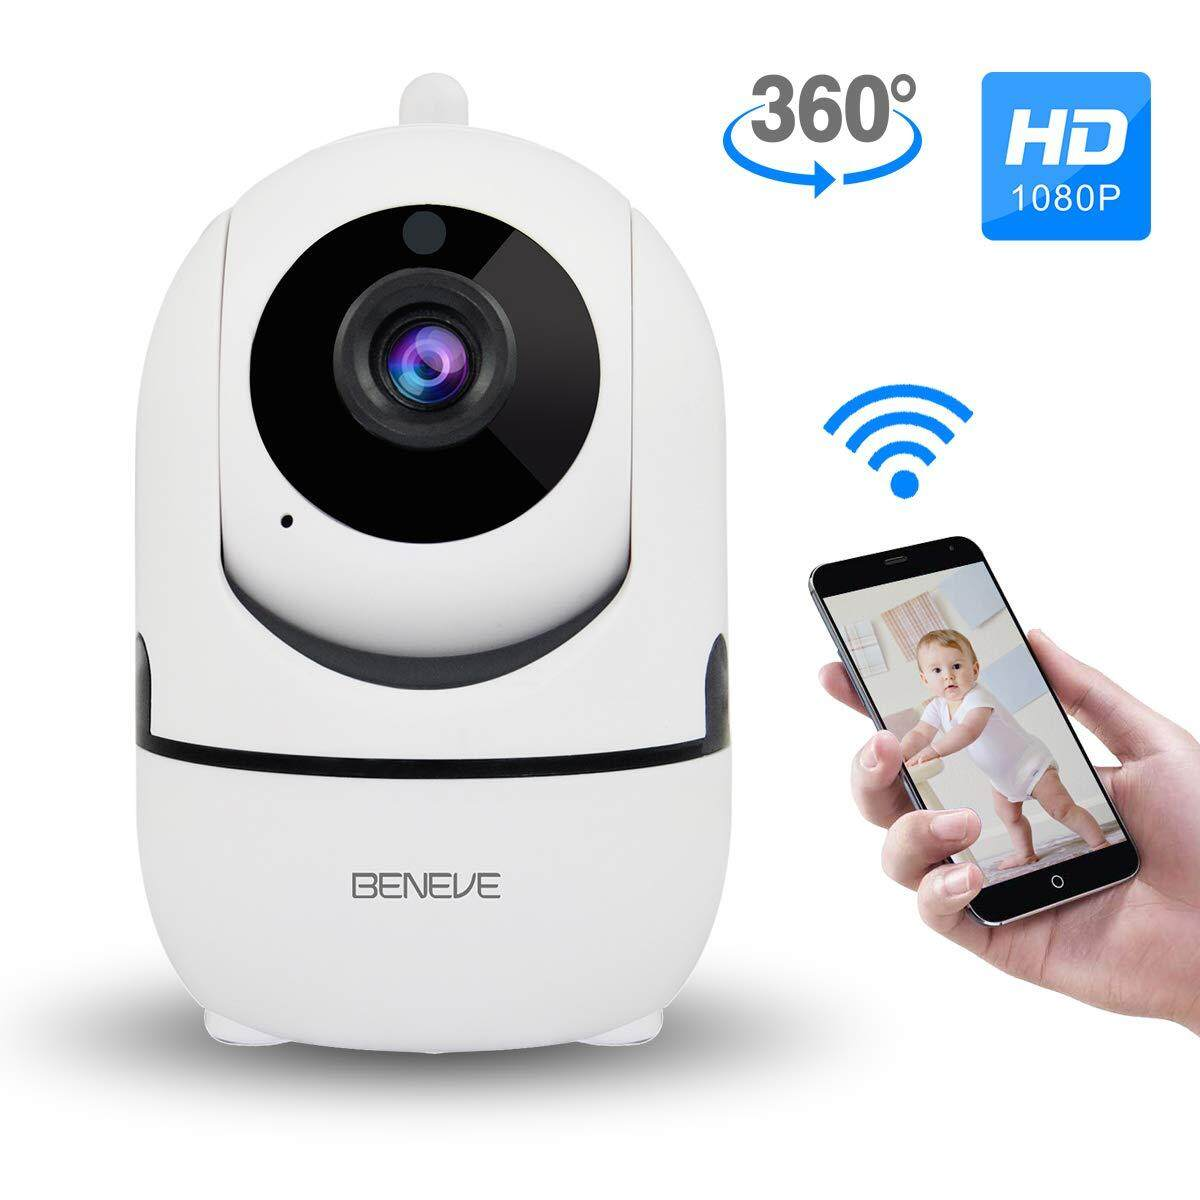 720p Wifi Panoramic Camera 360 Degree Fish-eye Smart Home Security Surveillance Baby Monitor Webcam Wireless Night Vision Camera Security & Protection